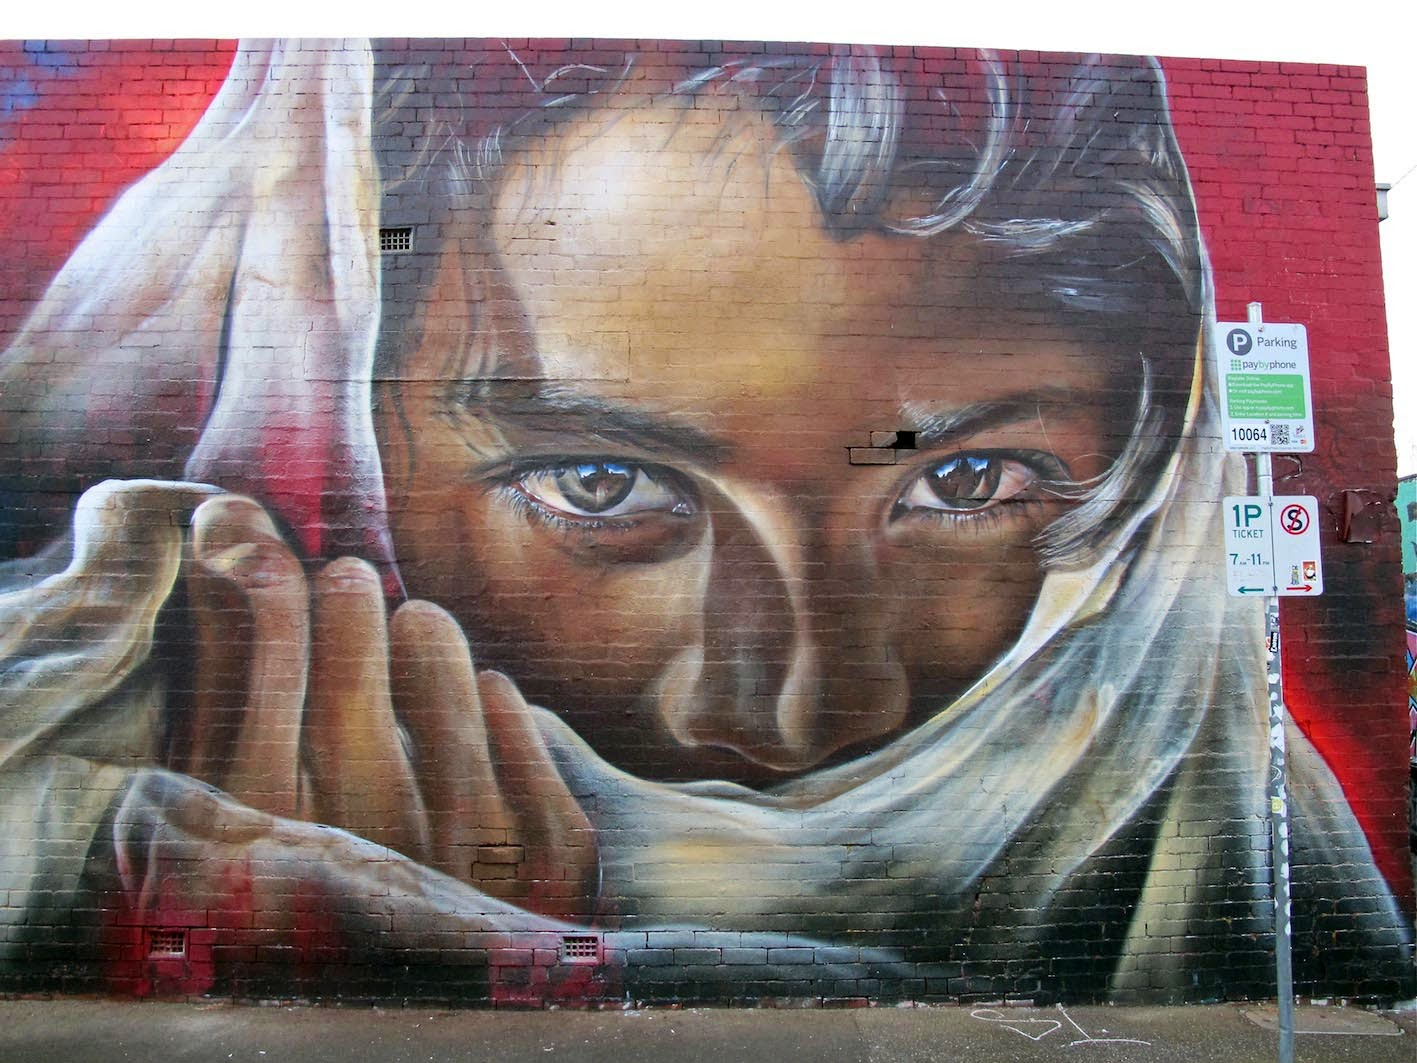 While you discovered their first collaboration a few days ago, Adnate, Smug and Sofles are back at it with this brand new piece on the streets of Melbourne, Australia.